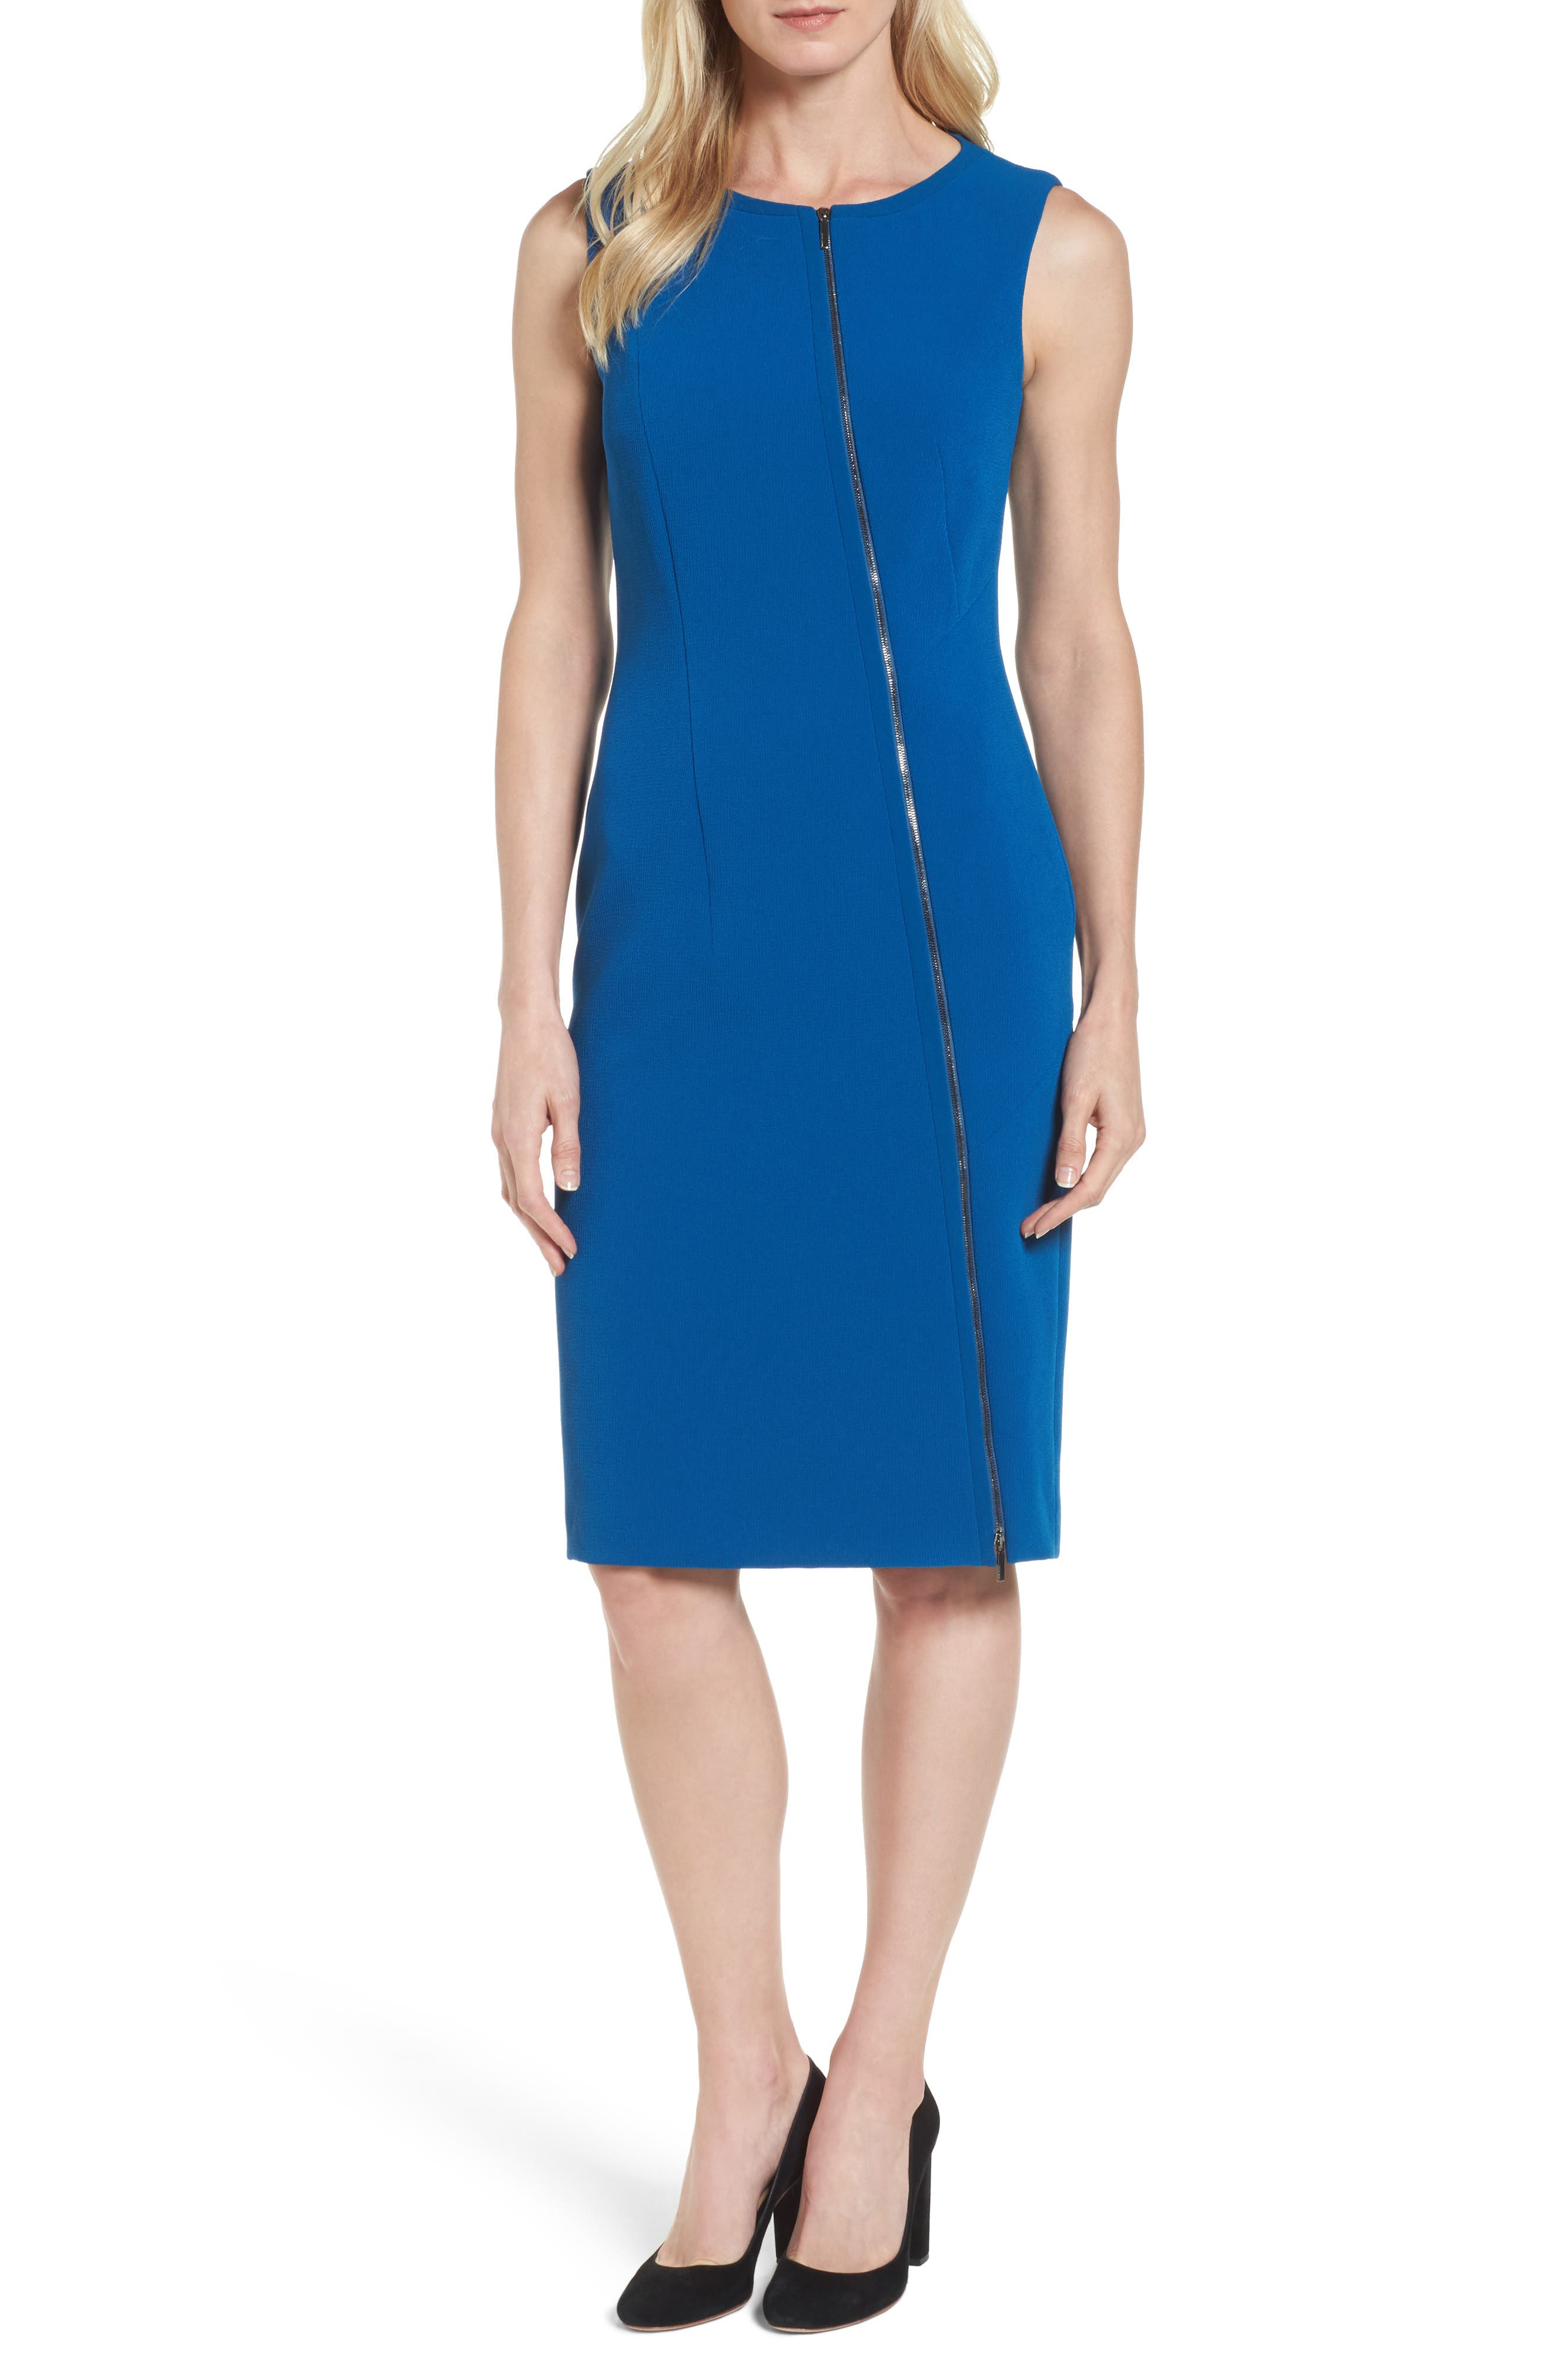 Alternate Image 1 Selected - Boss Danafea Zip Detail Sheath Dress (Nordstrom Exclusive)